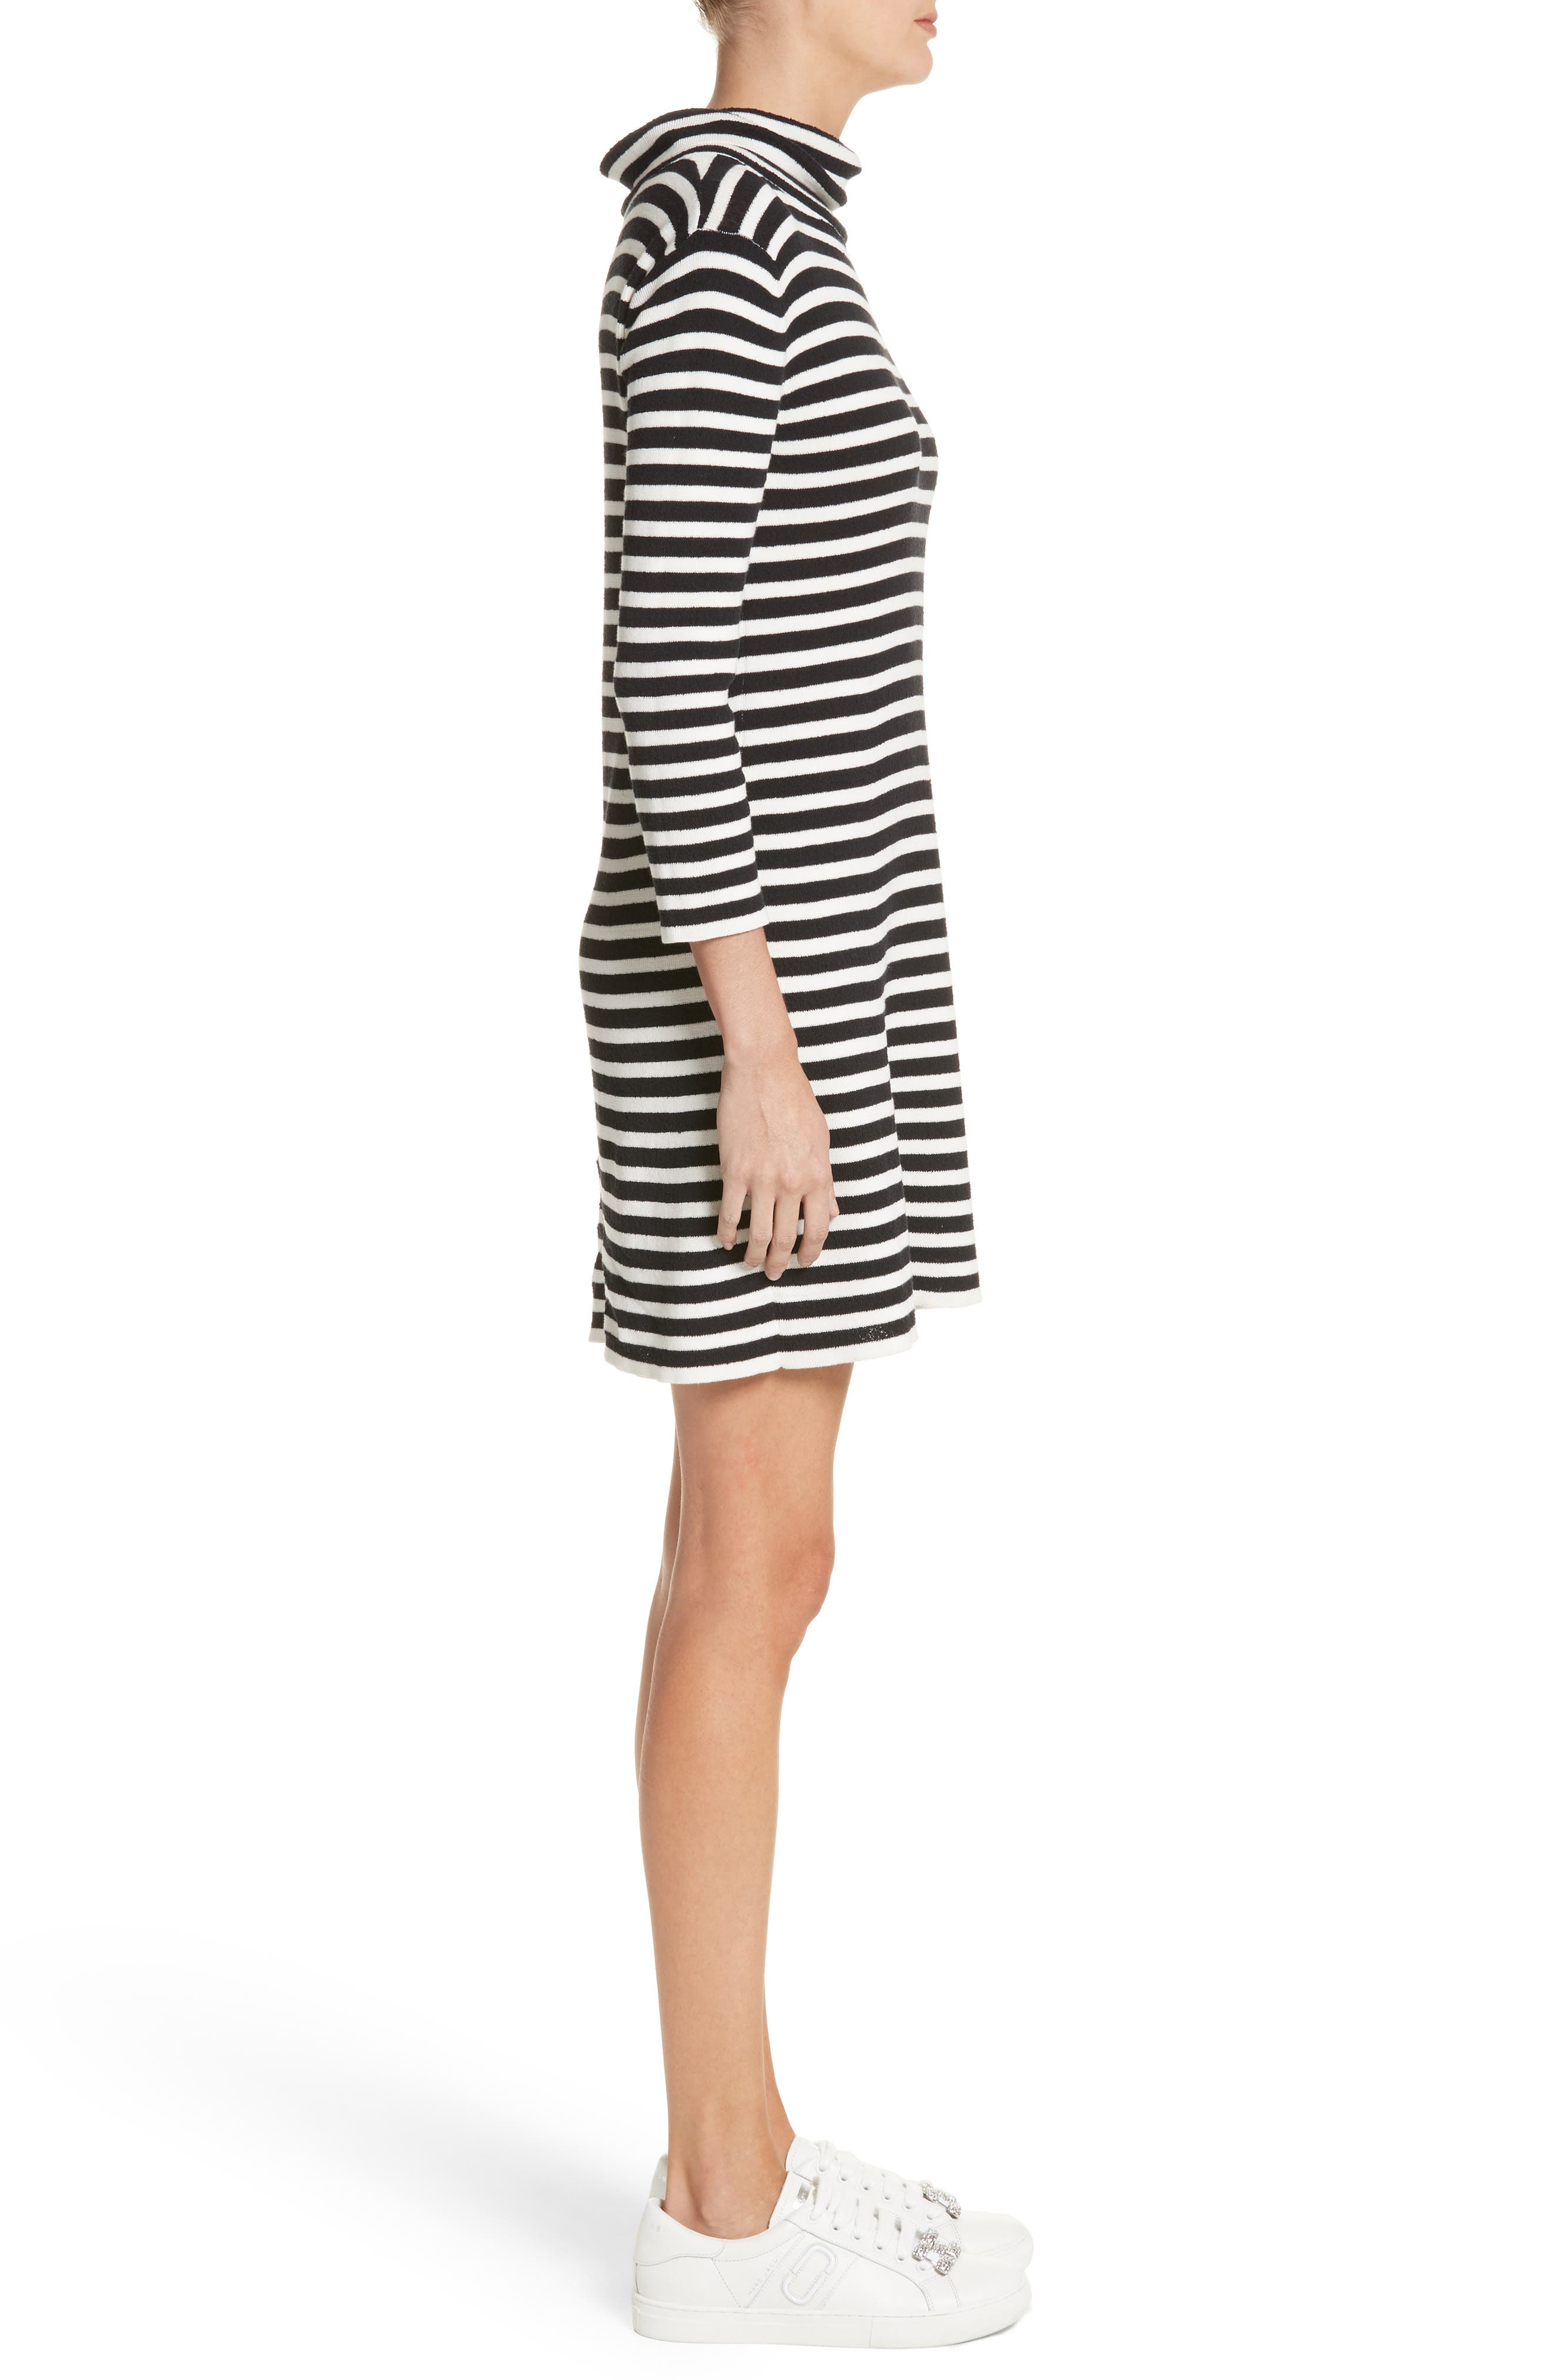 Stripe Cowl Neck Dress,                             Alternate thumbnail 3, color,                             Black/ Ivory